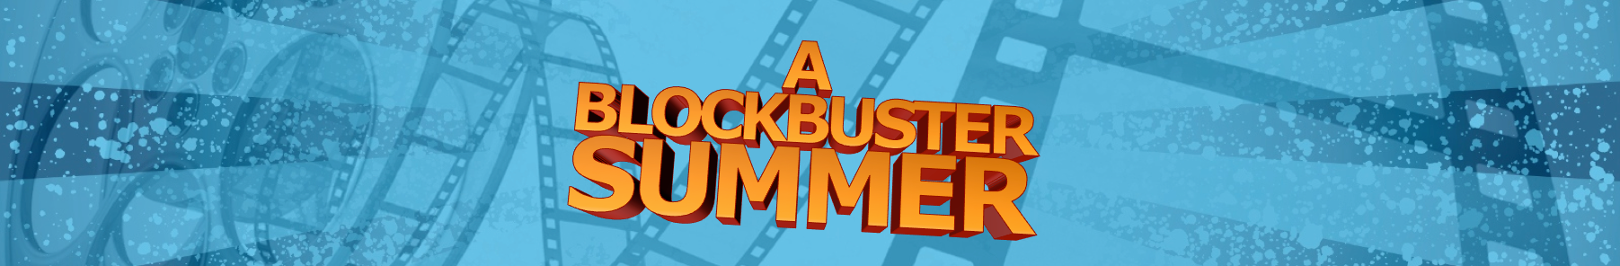 A Blockbuster Summer